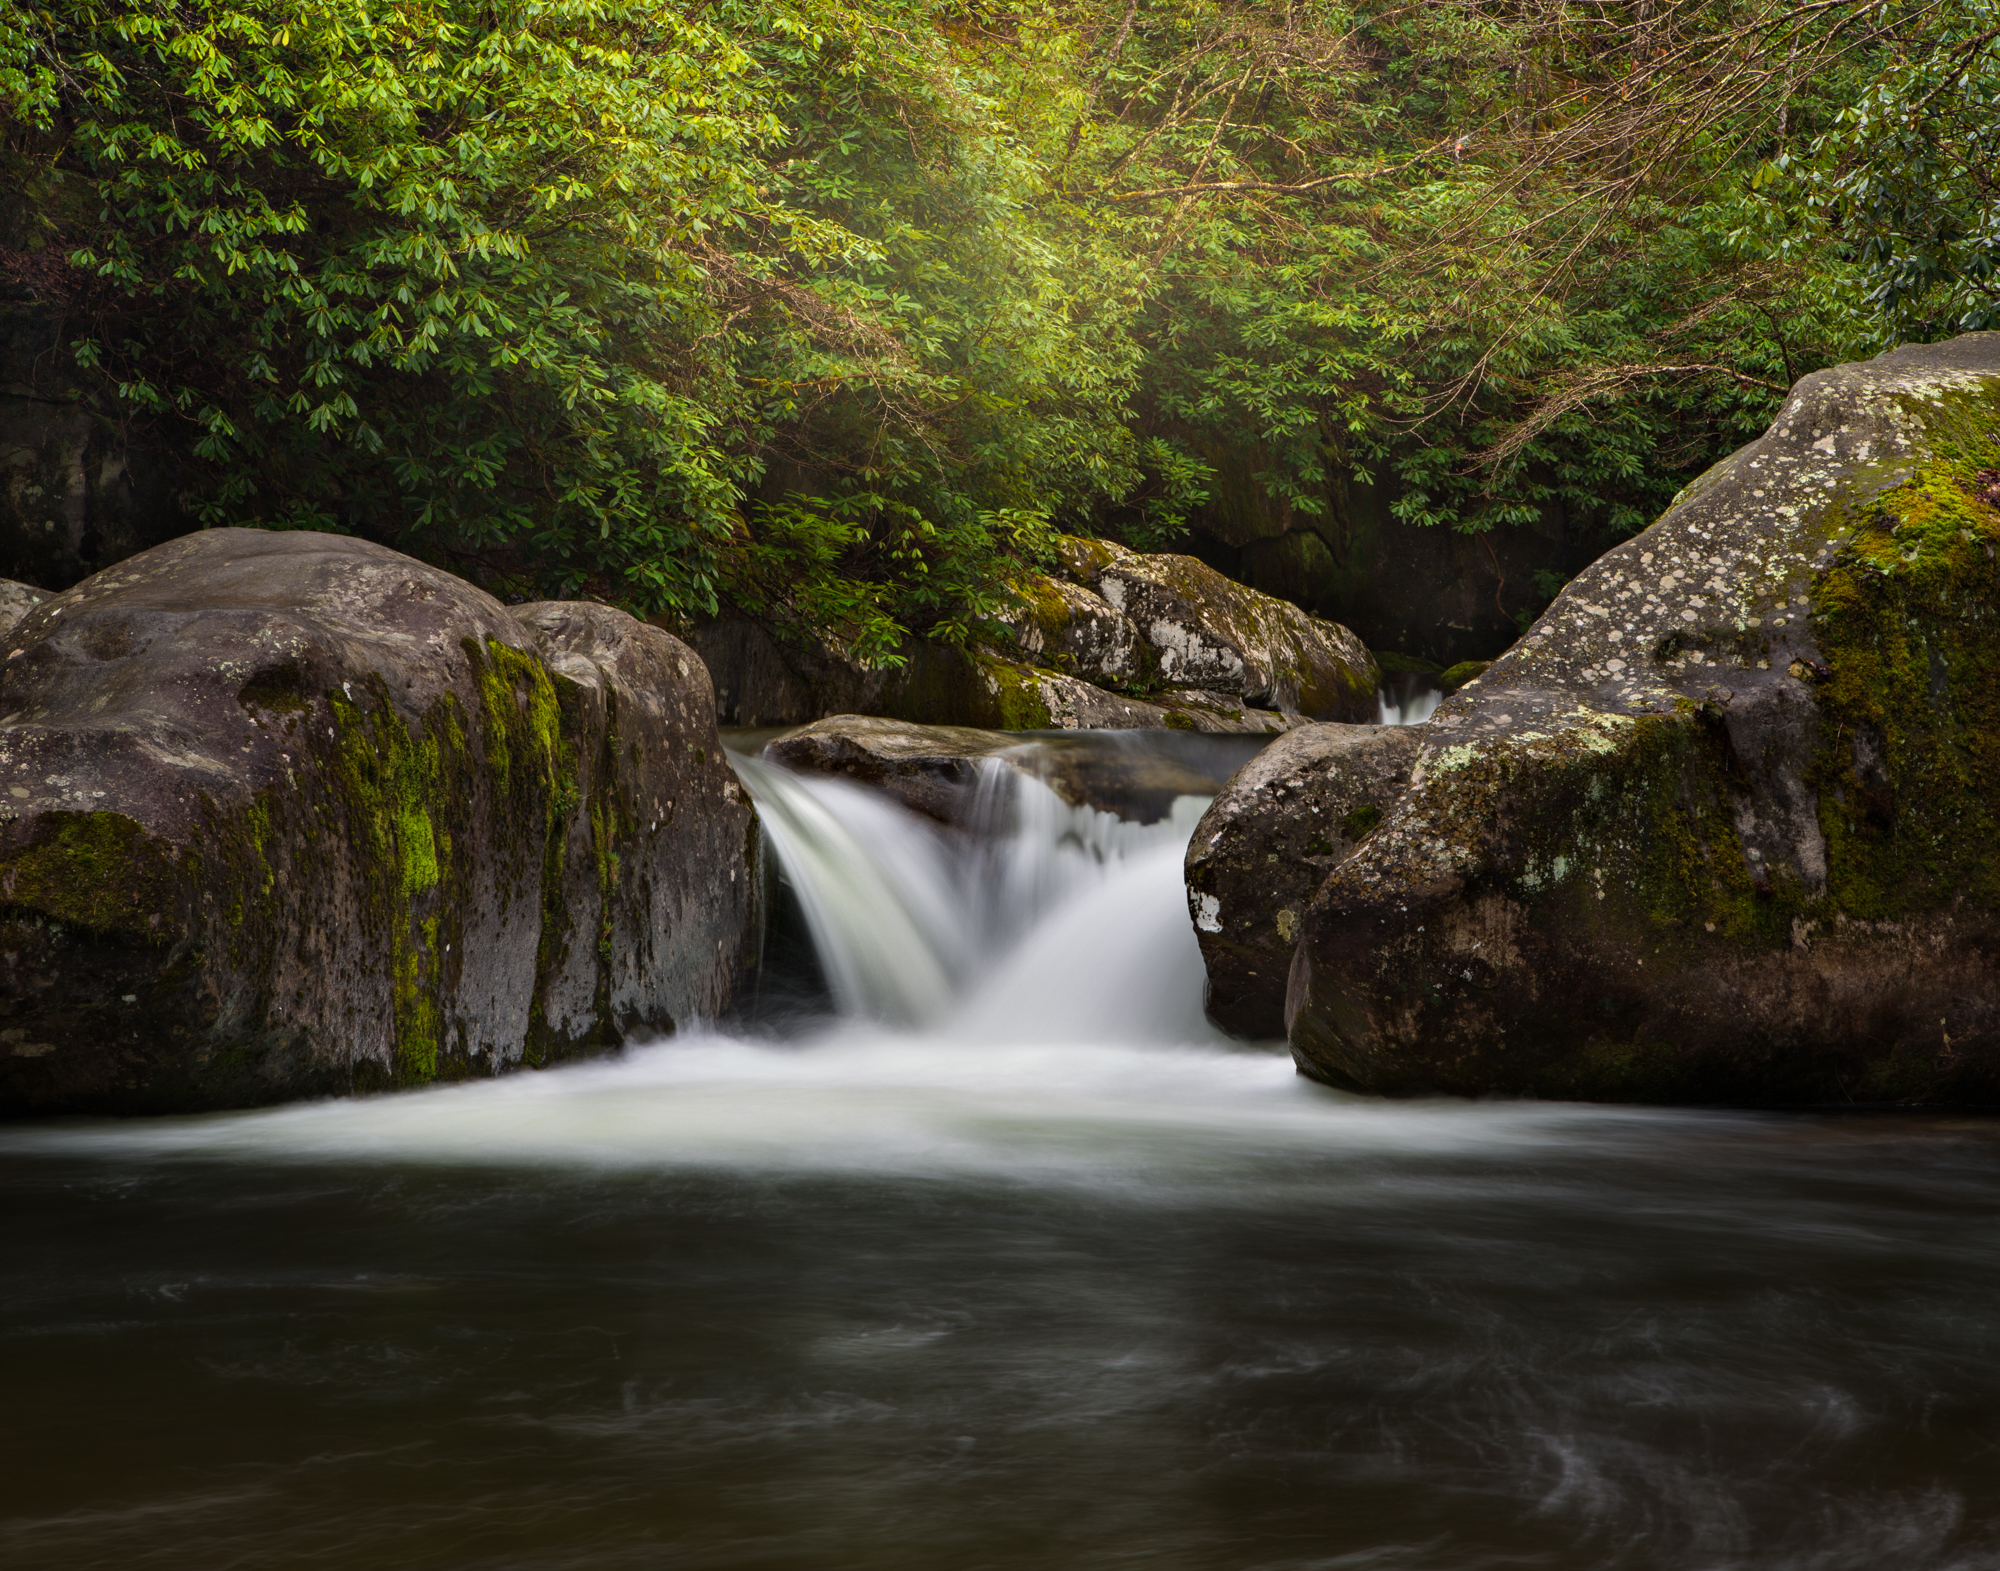 29. Big Creek, Great Smoky Mountains National Park, Tennessee